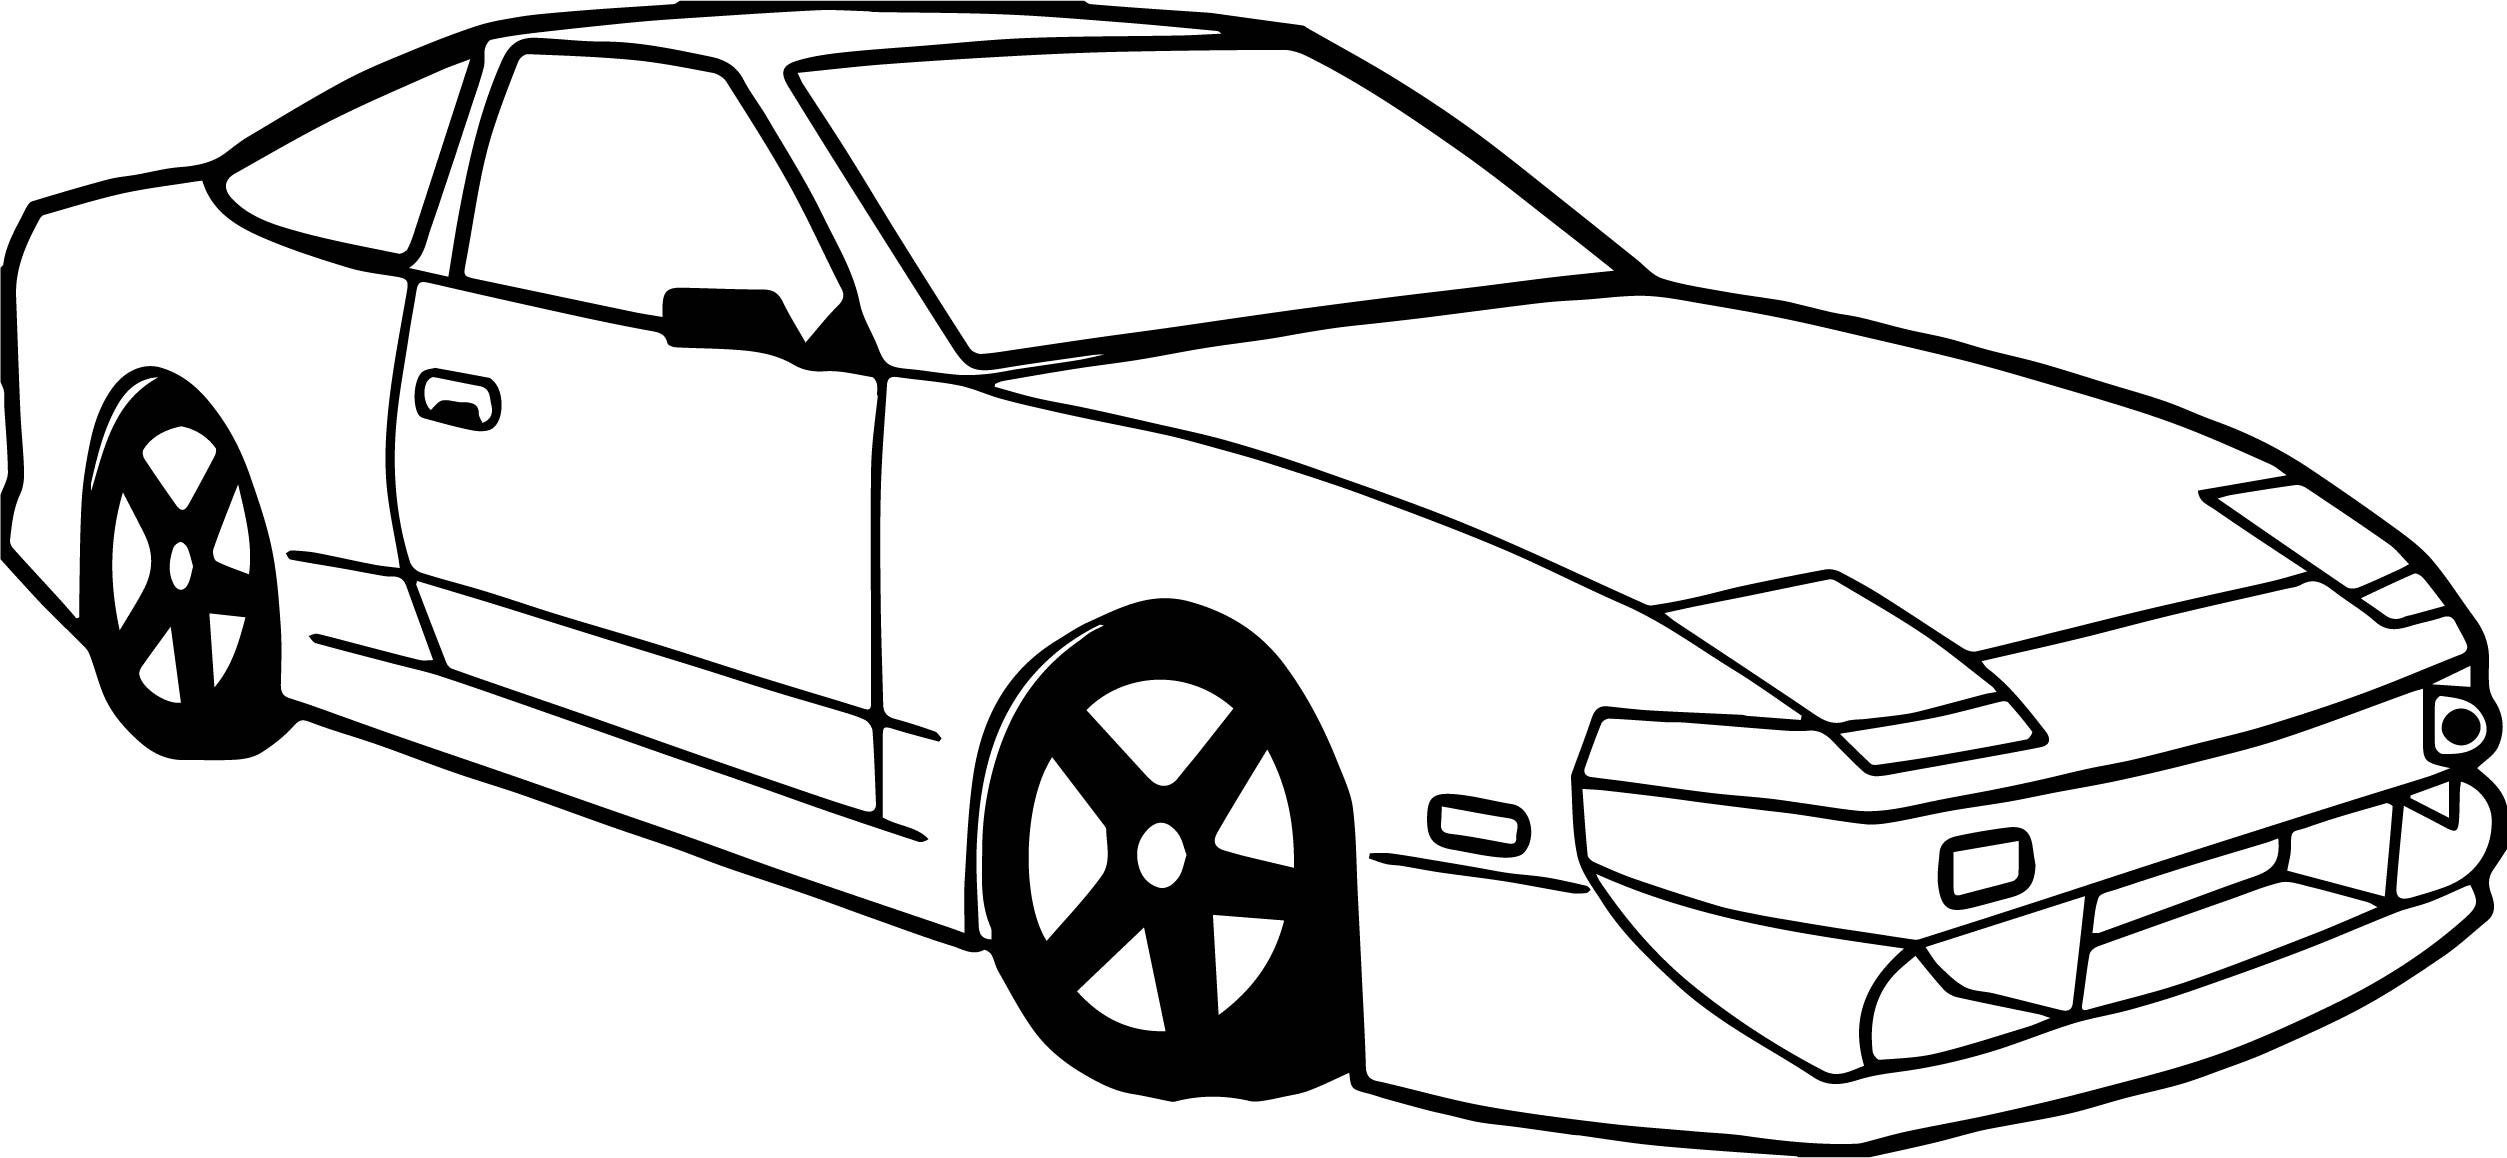 car clipart coloring mustang car coloring pages clip art library coloring clipart car